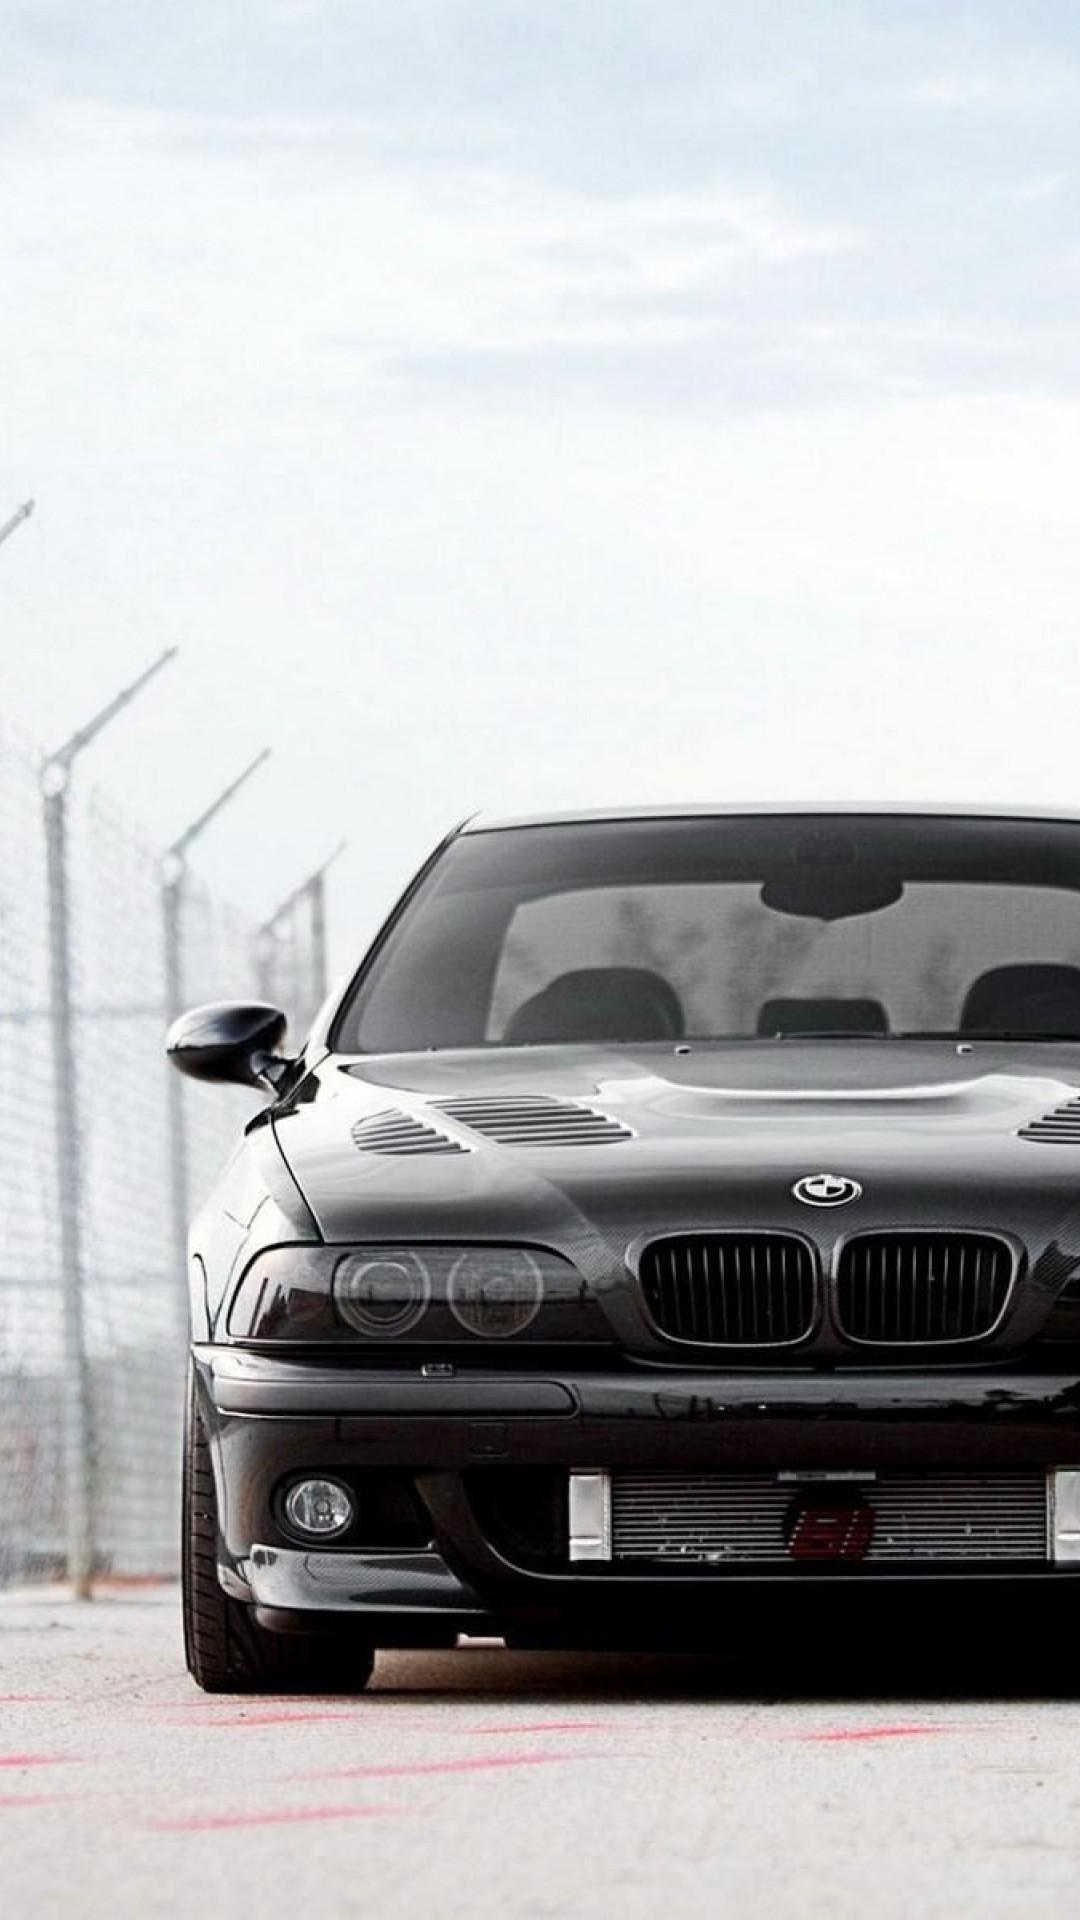 Bmw E39 iPhone Wallpapers - Wallpaper Cave